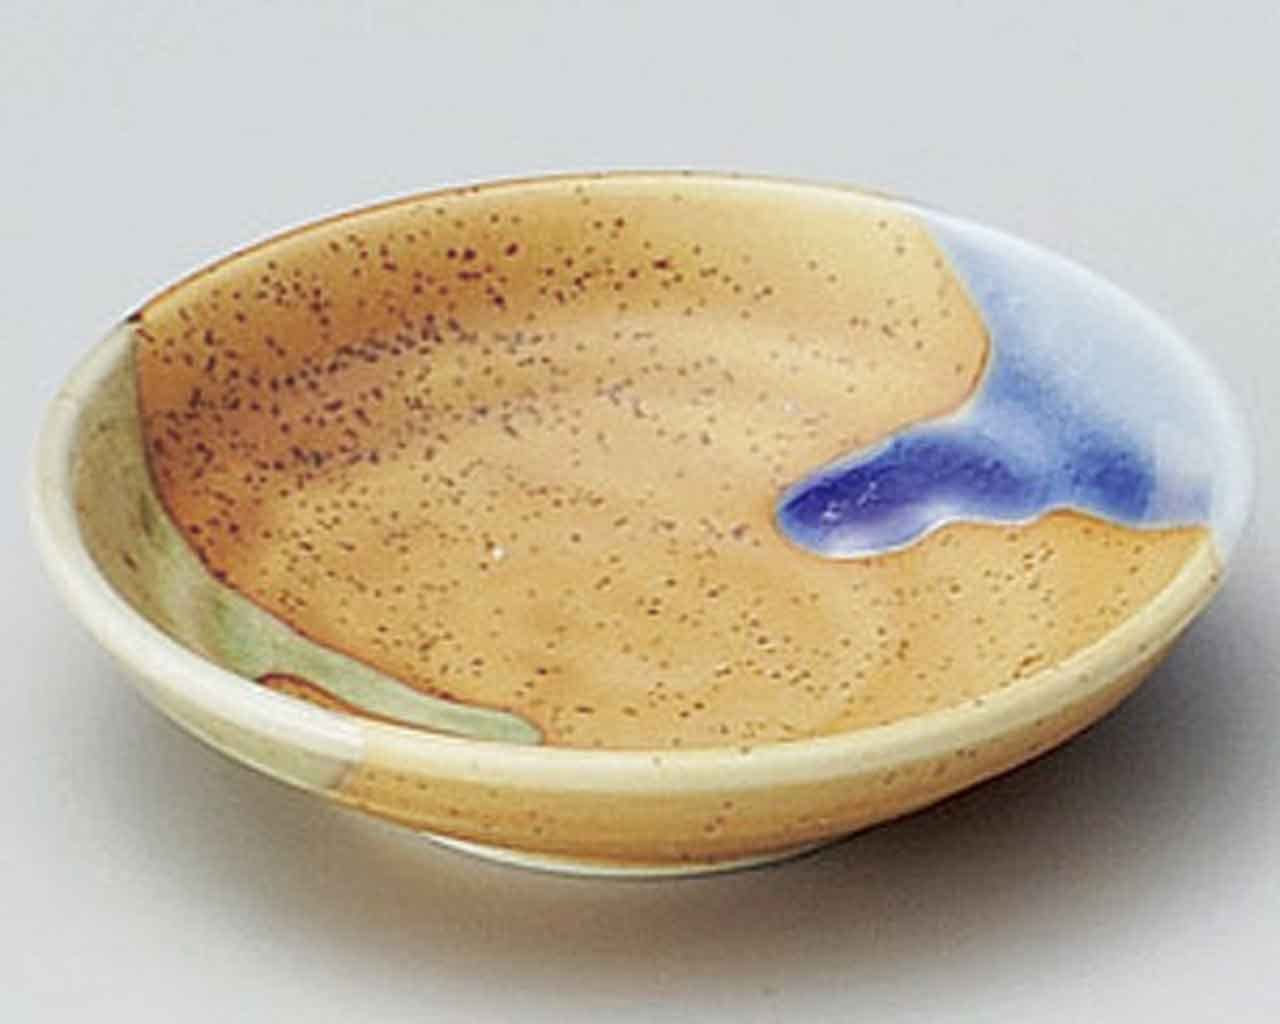 Sansai 3.7inch Small Plate Beige porcelain Made in Japan